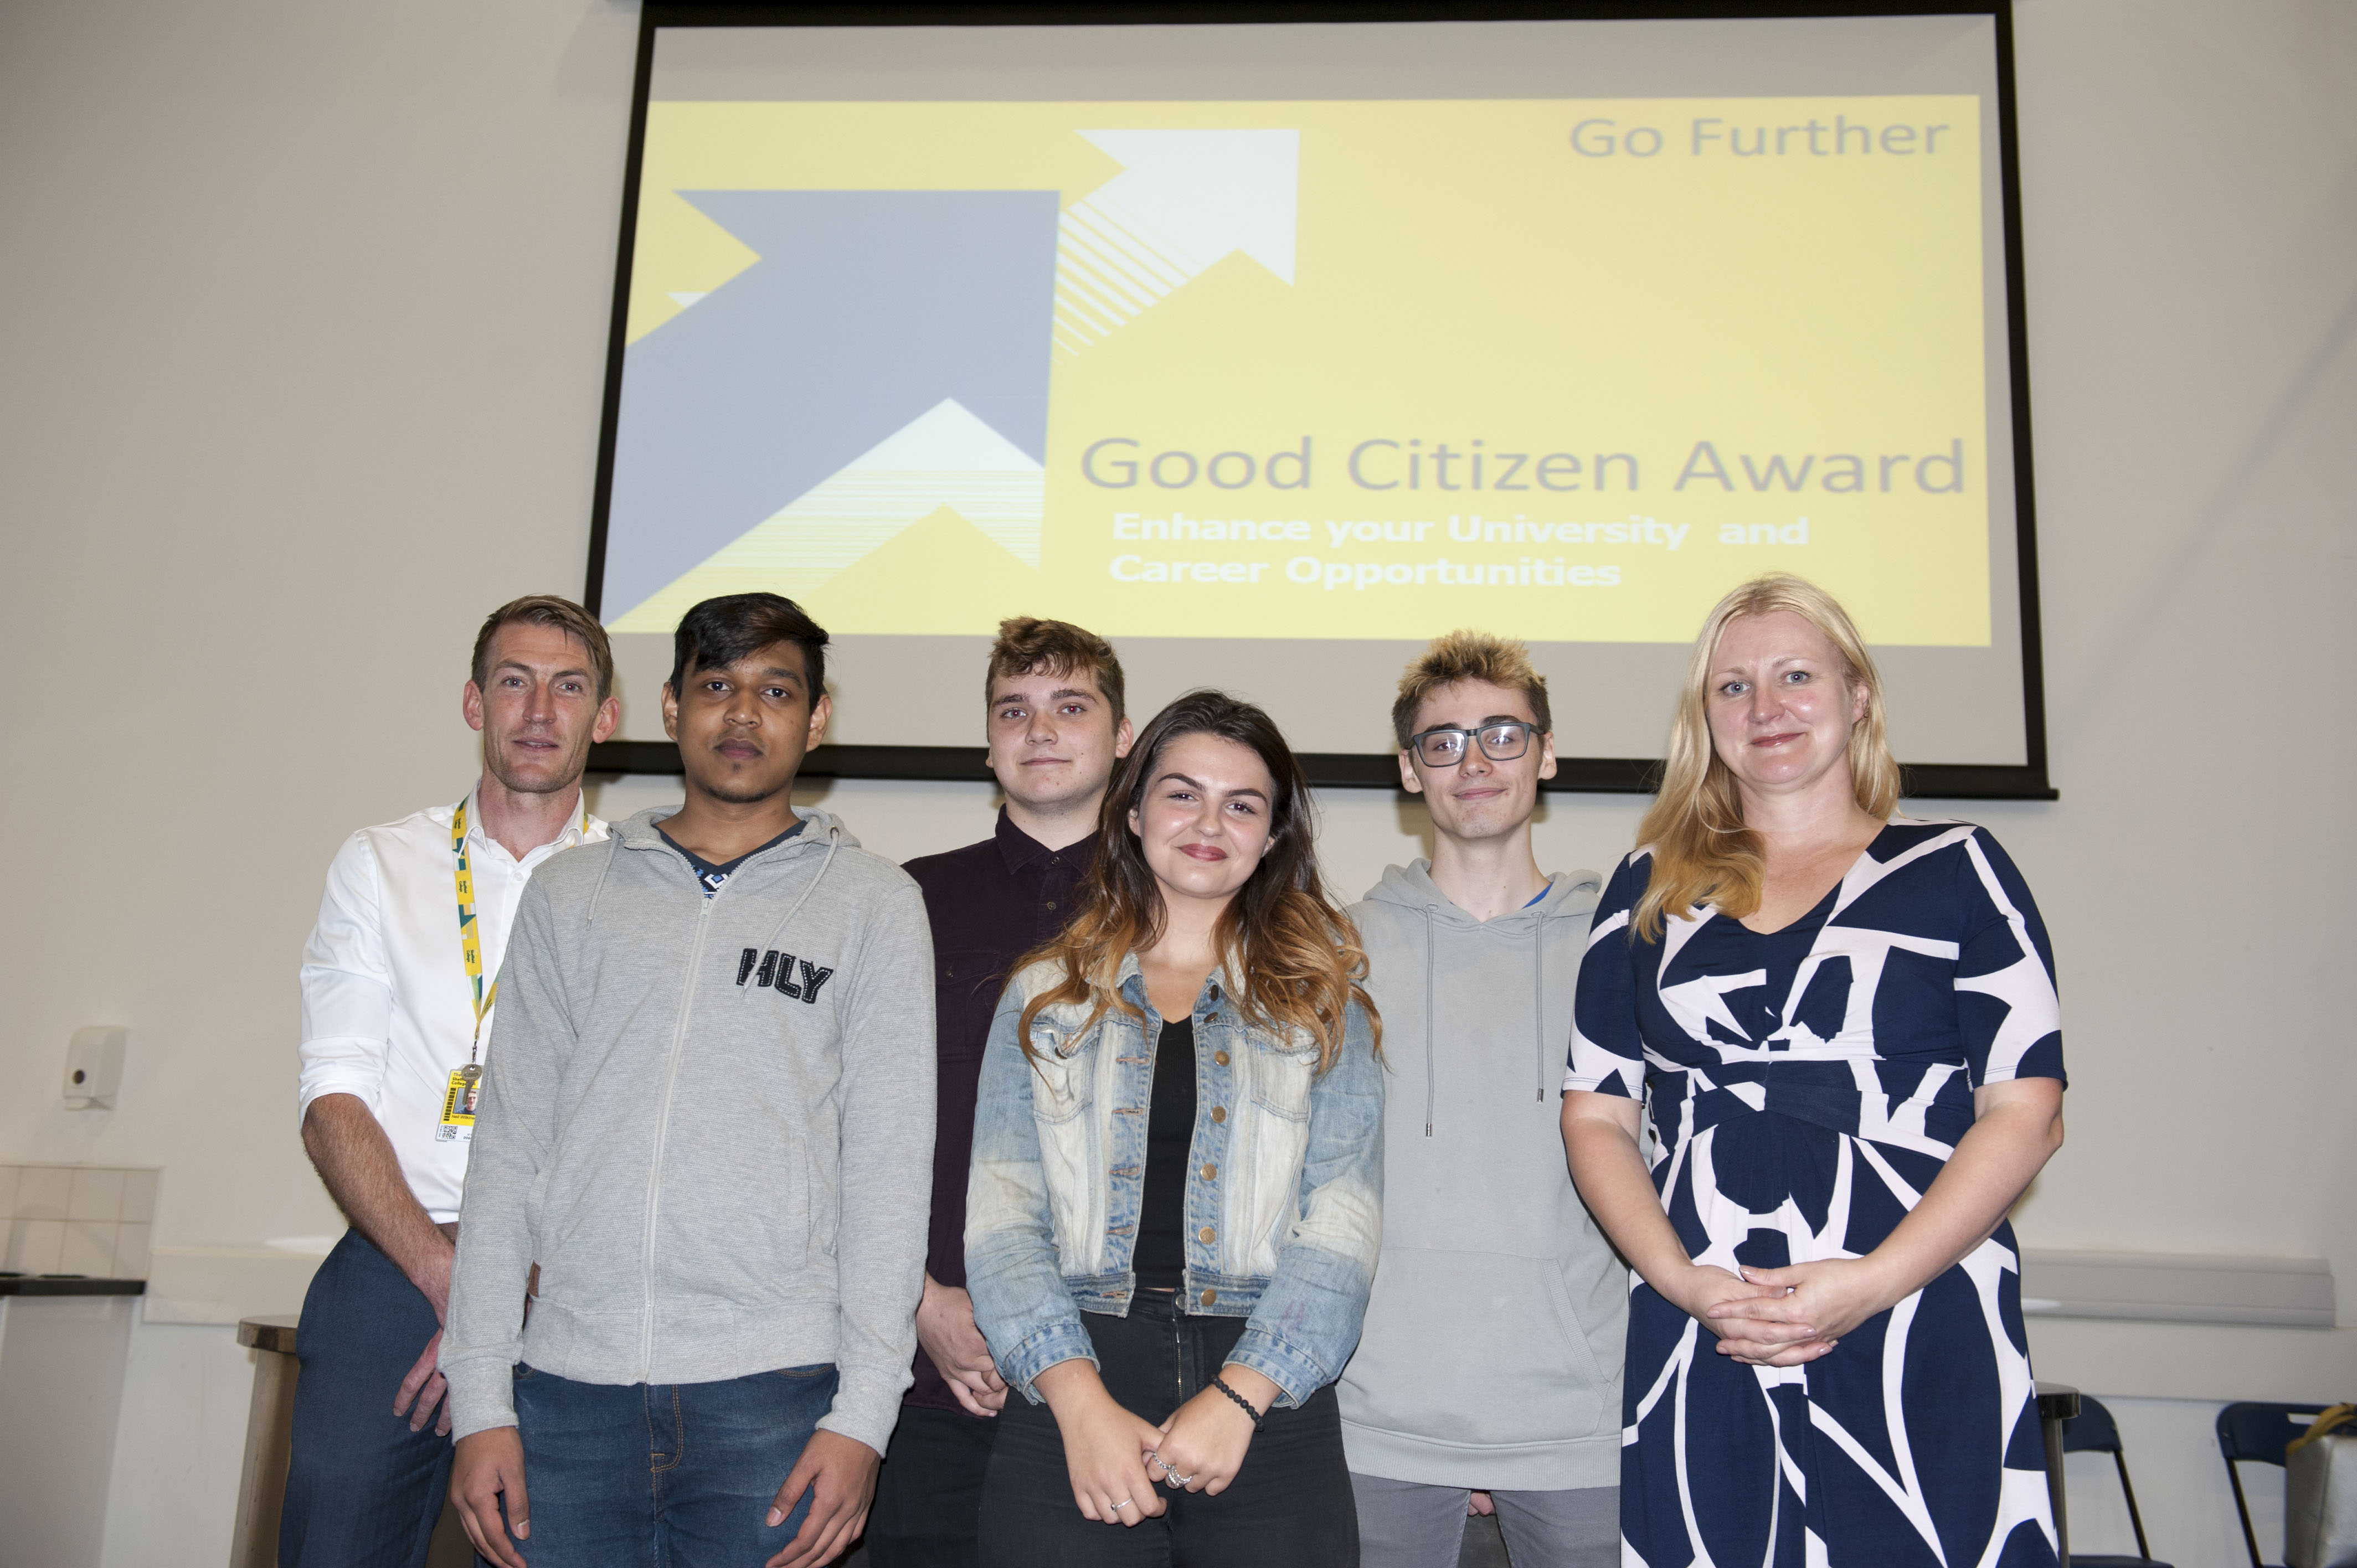 Good Citizen Award launches for Sheffield College students